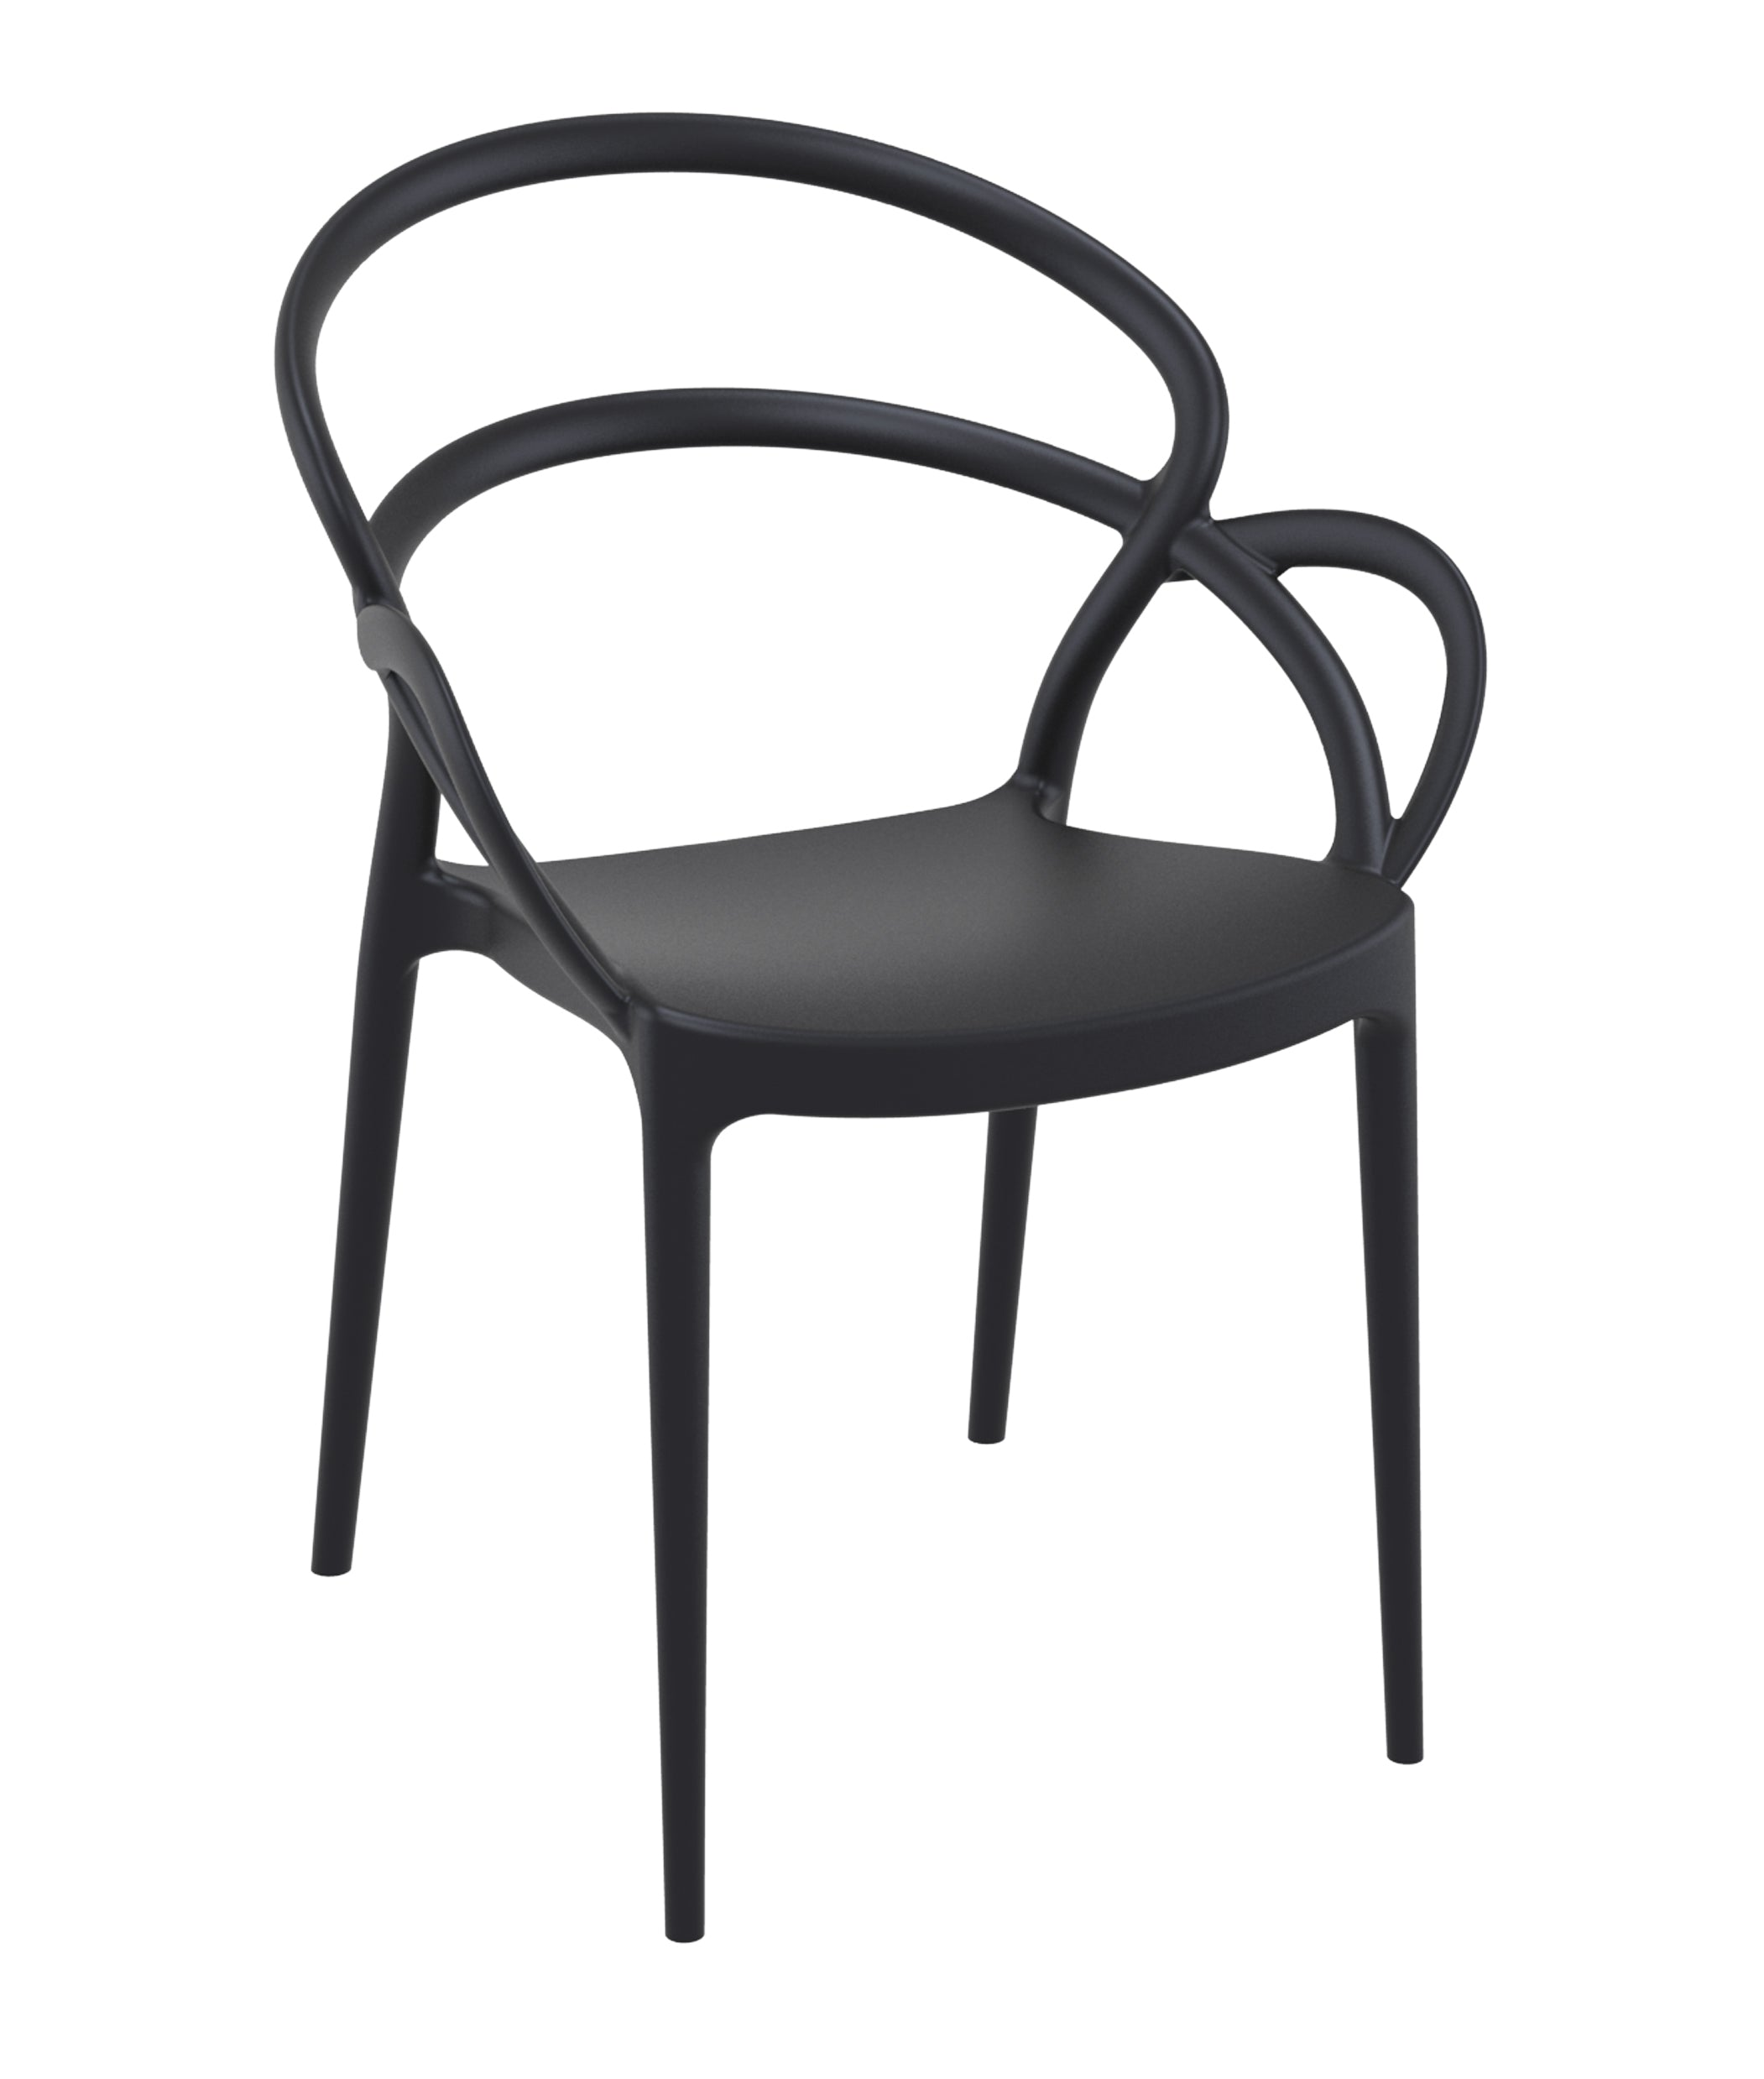 Marcos Outdoor Chair - Black